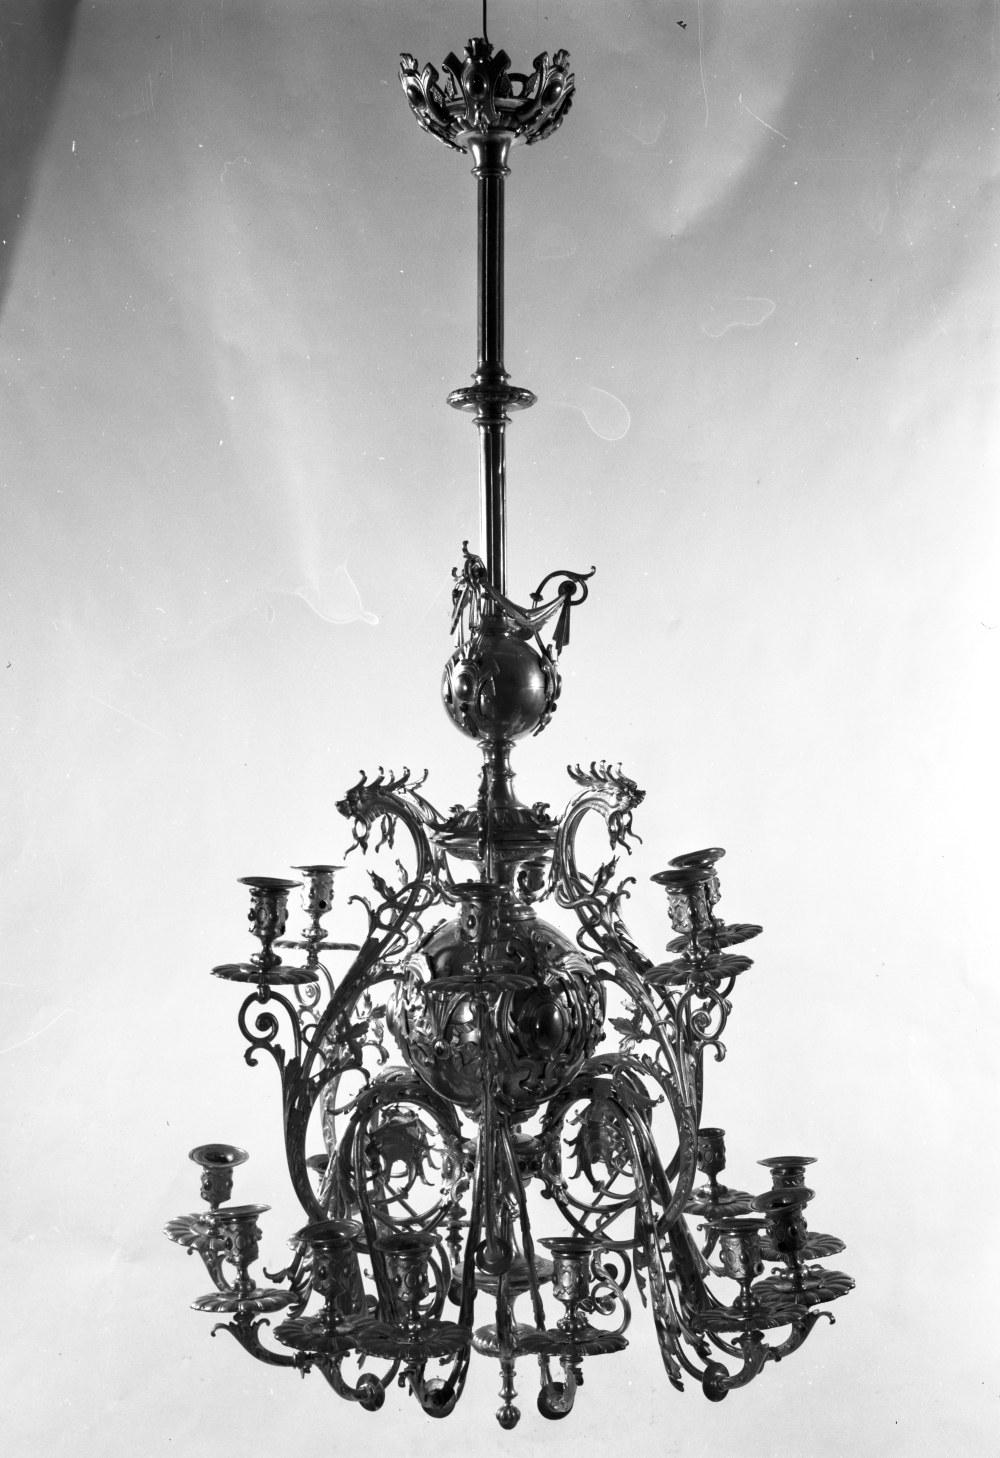 Chandelier, 1887–1911, National Museum of Lithuania, IM-5102. Photo by Vytautas Bortkevičius, 1980